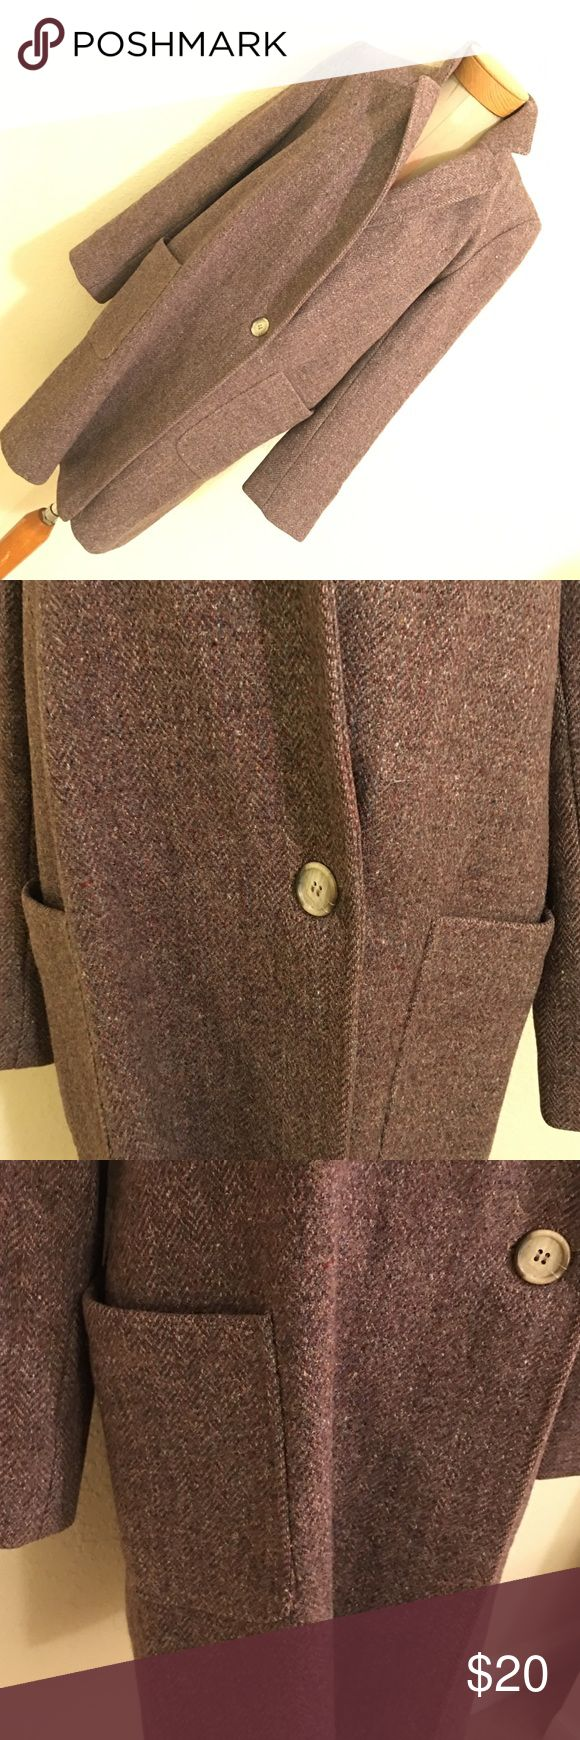 Gorgeous Larry Levine Coat Lining needs sewing. Check pictures Larry Levine Jackets & Coats